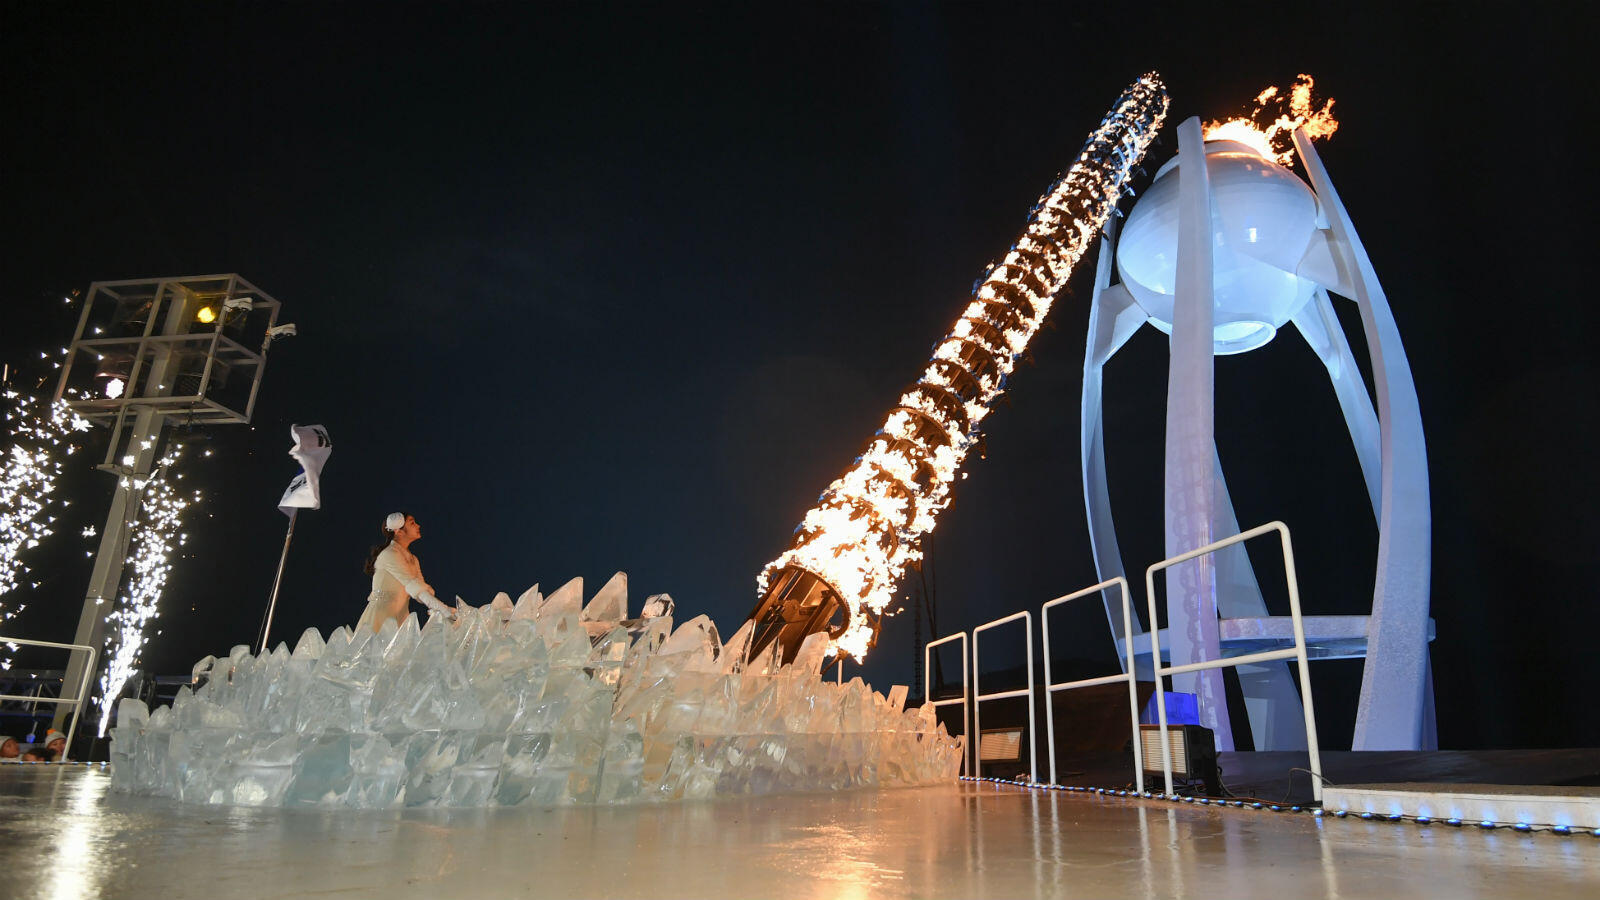 South Korean figure skater Kim Yuna, the last Olympic torch relay runner, ignites the Pyeongchang stadium cauldron with the Olympic Flame.